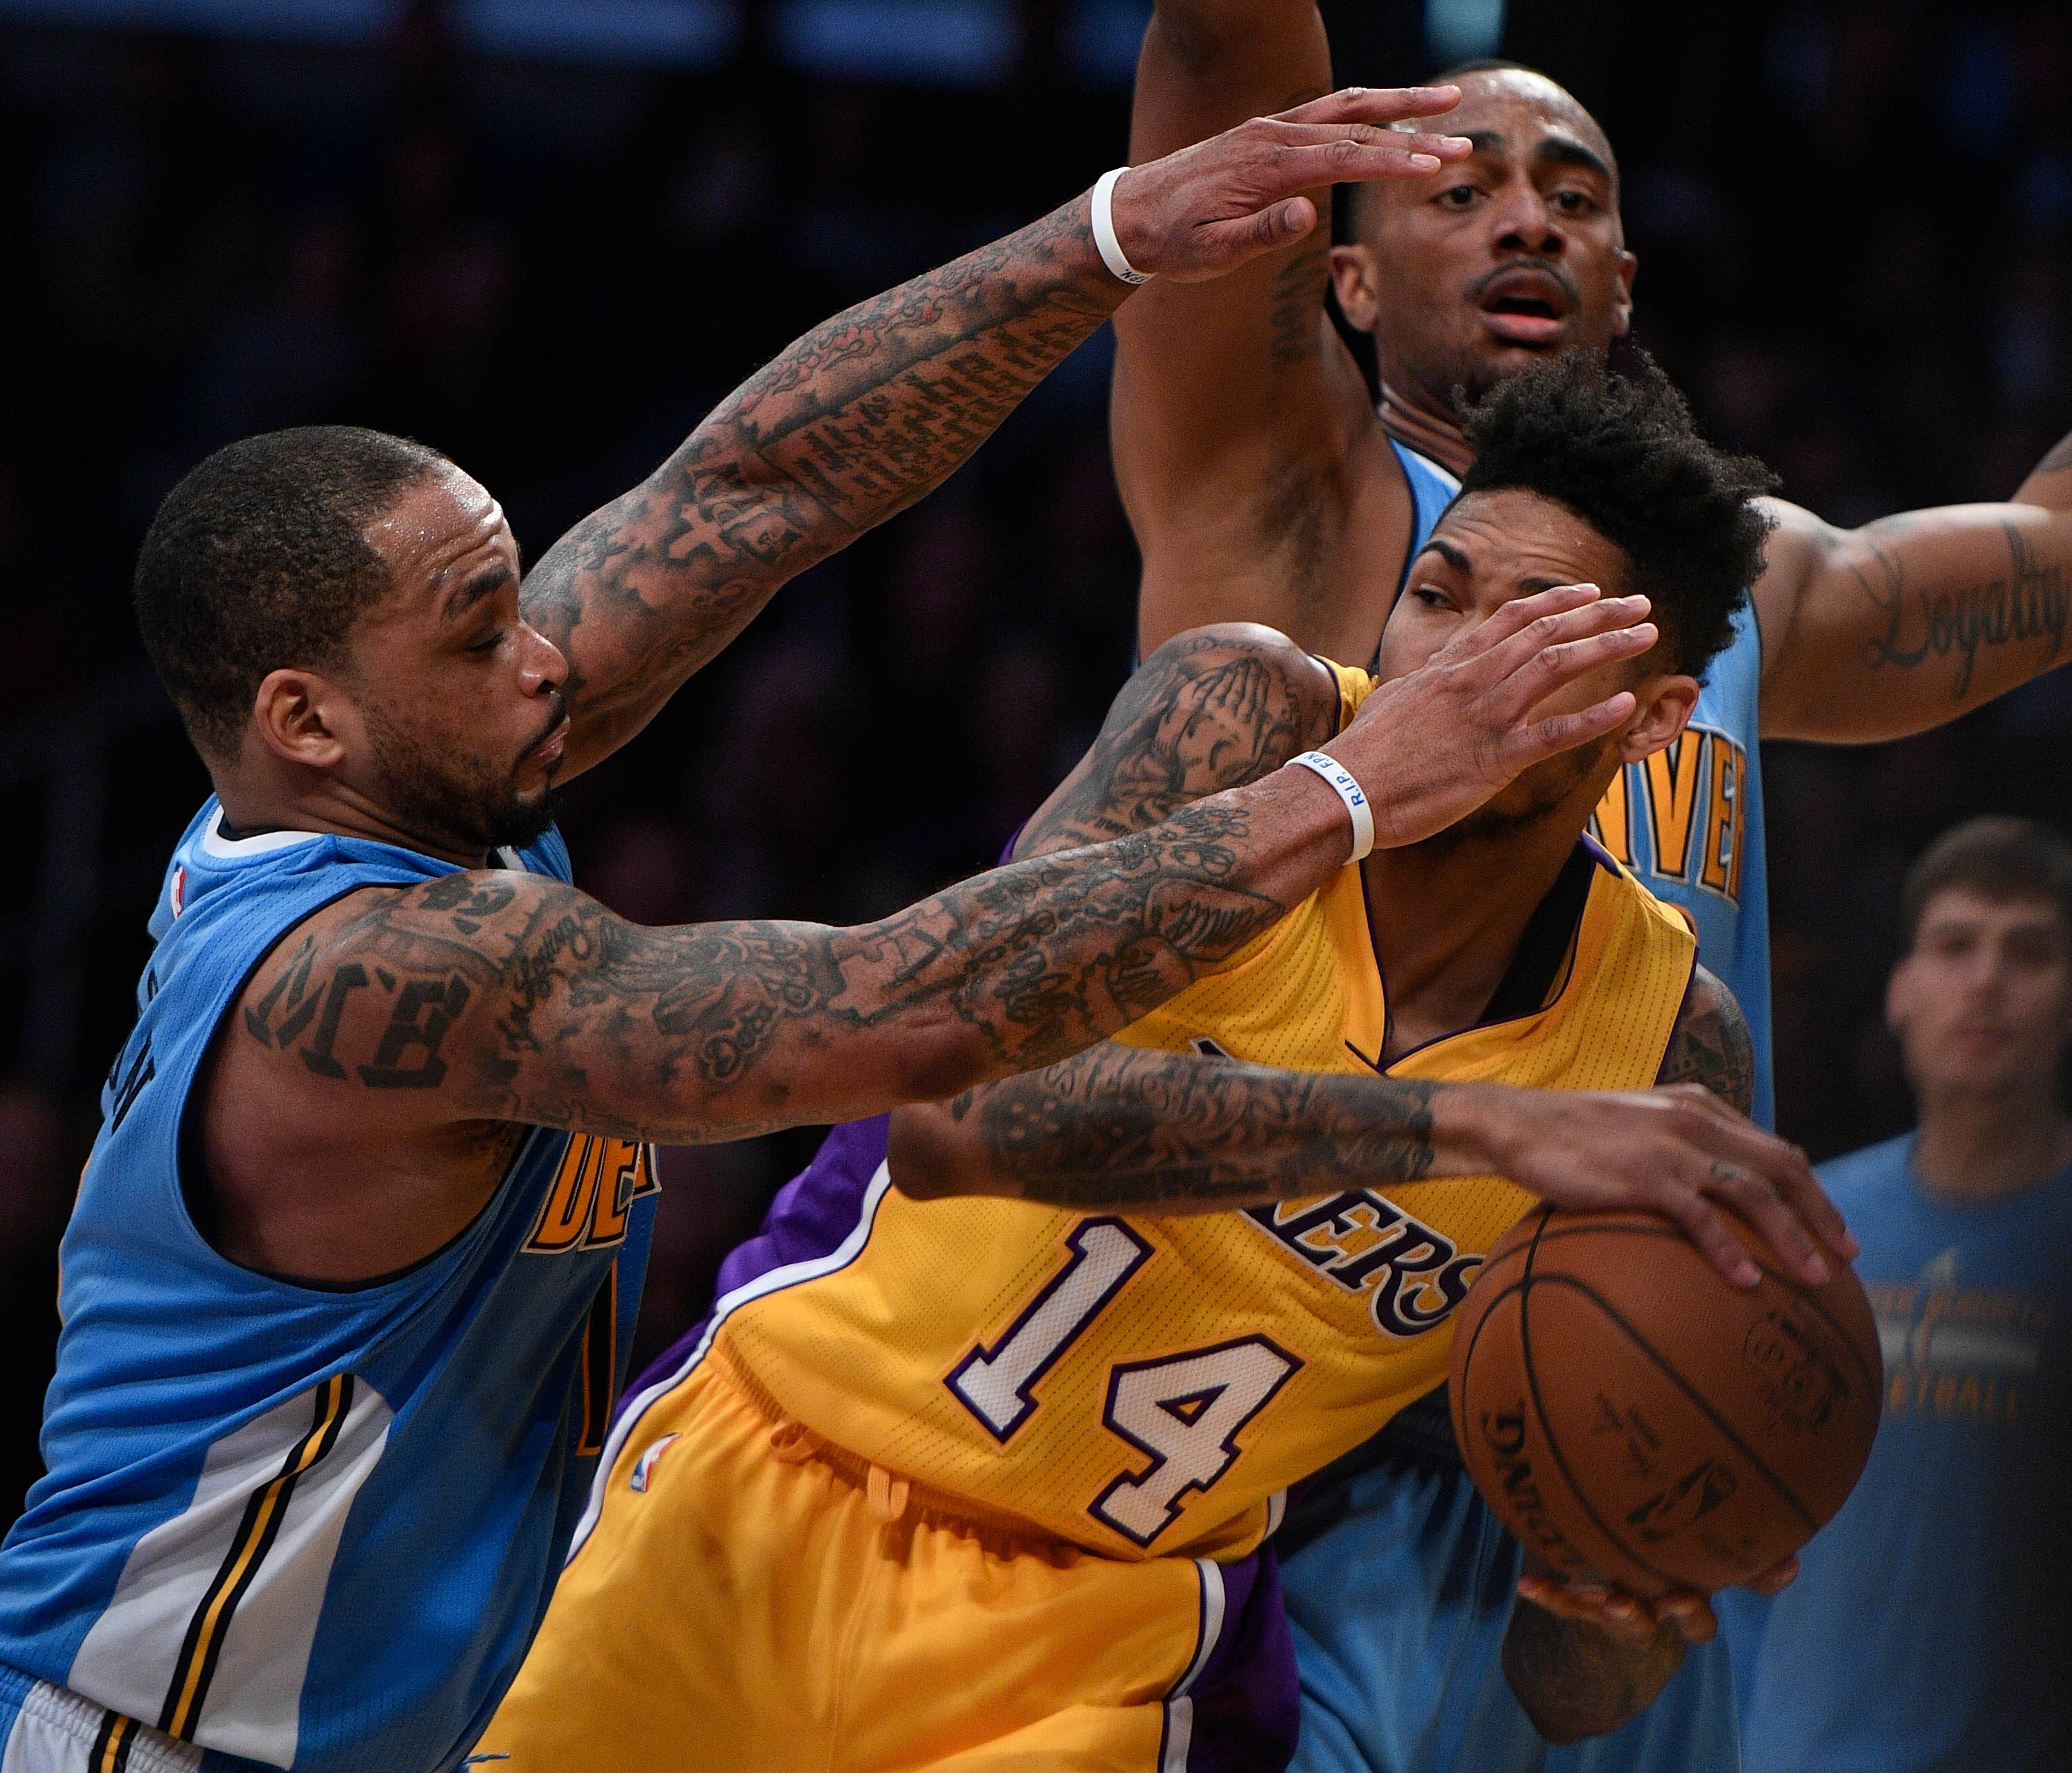 Memphis Grizzlies Vs Golden State Warriors Live Stream Free: Lakers At Nuggets Live Stream: How To Watch Online